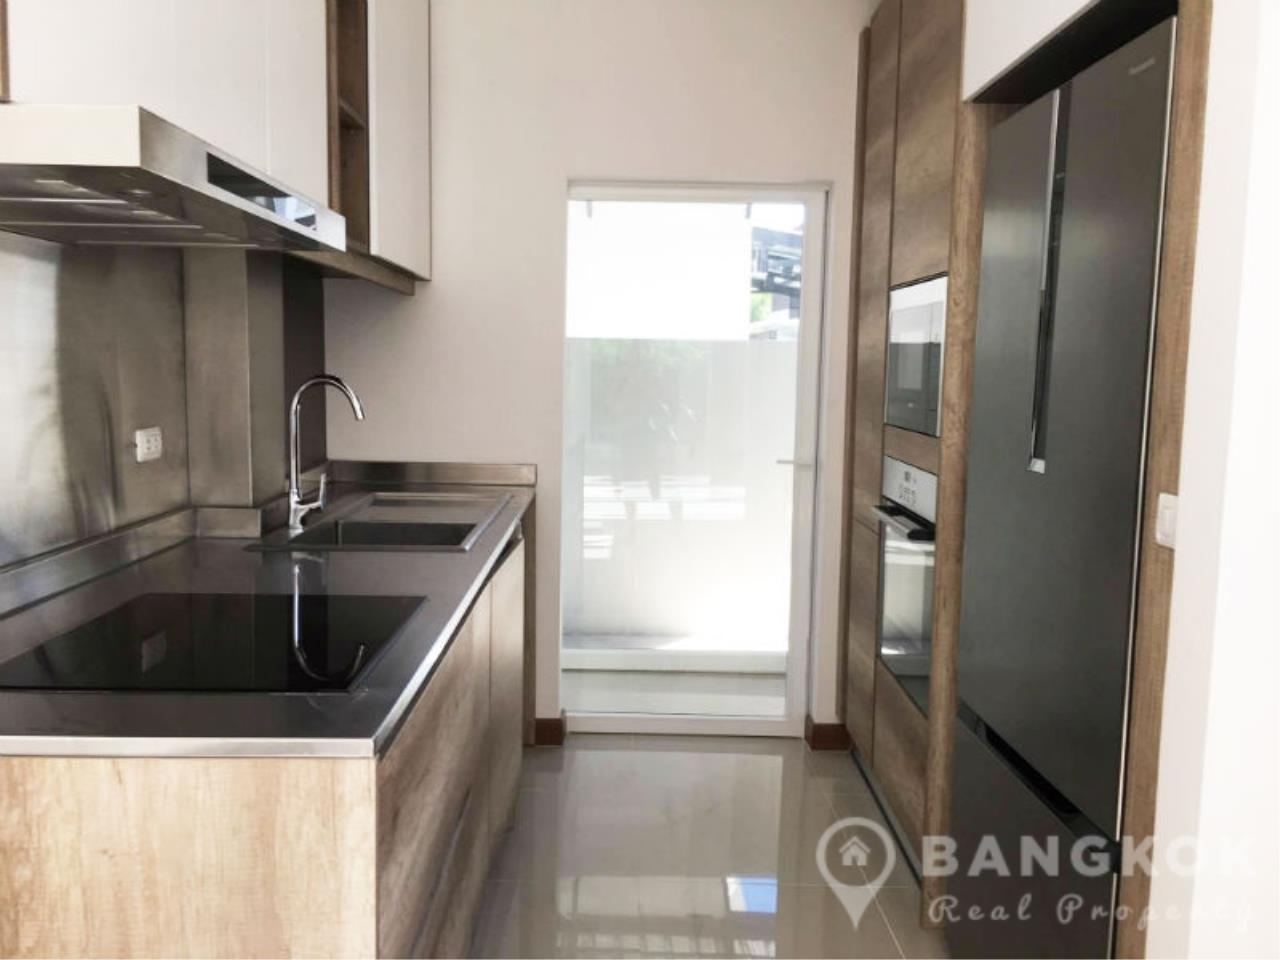 Bangkok Real Property Agency's Brand New Detached 4 Bed 4 Bath House just off Srinakarin Road 6